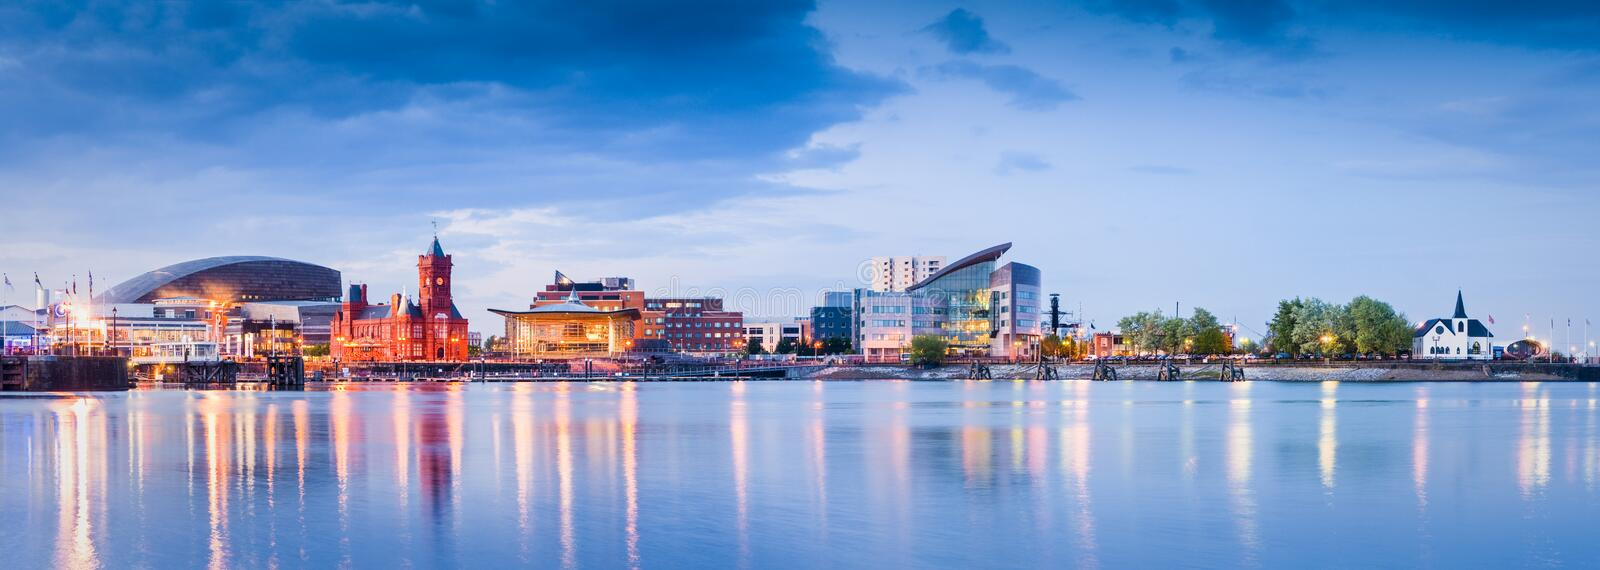 Cardiff Bay Cityscape royalty free stock images